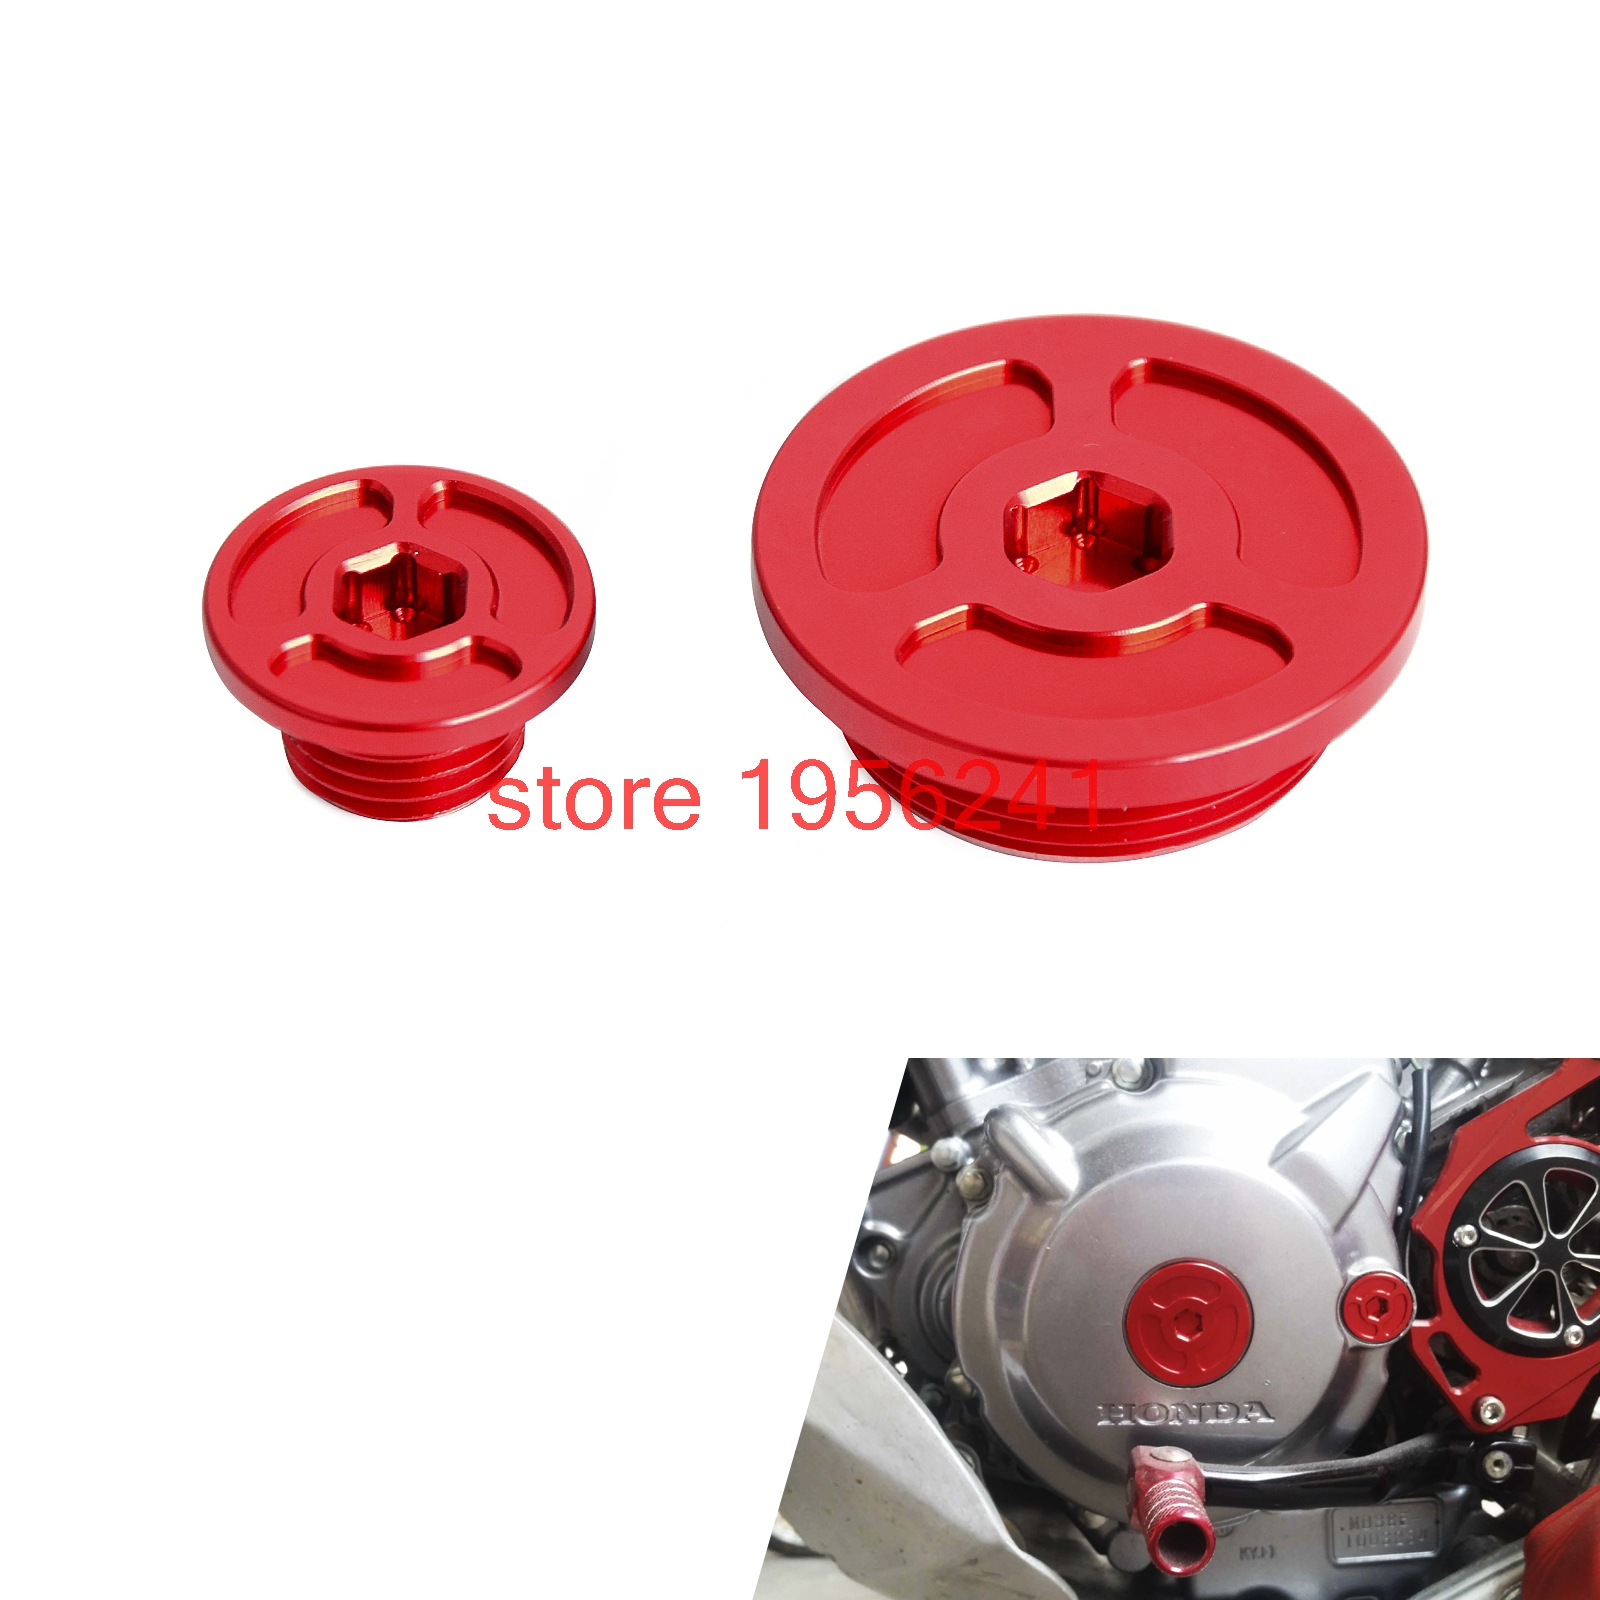 Billet Red Engine Timing Plugs Bolts For Honda CRF250L CRF250M 2012 - 2015 2013 2014 CRF250 L M